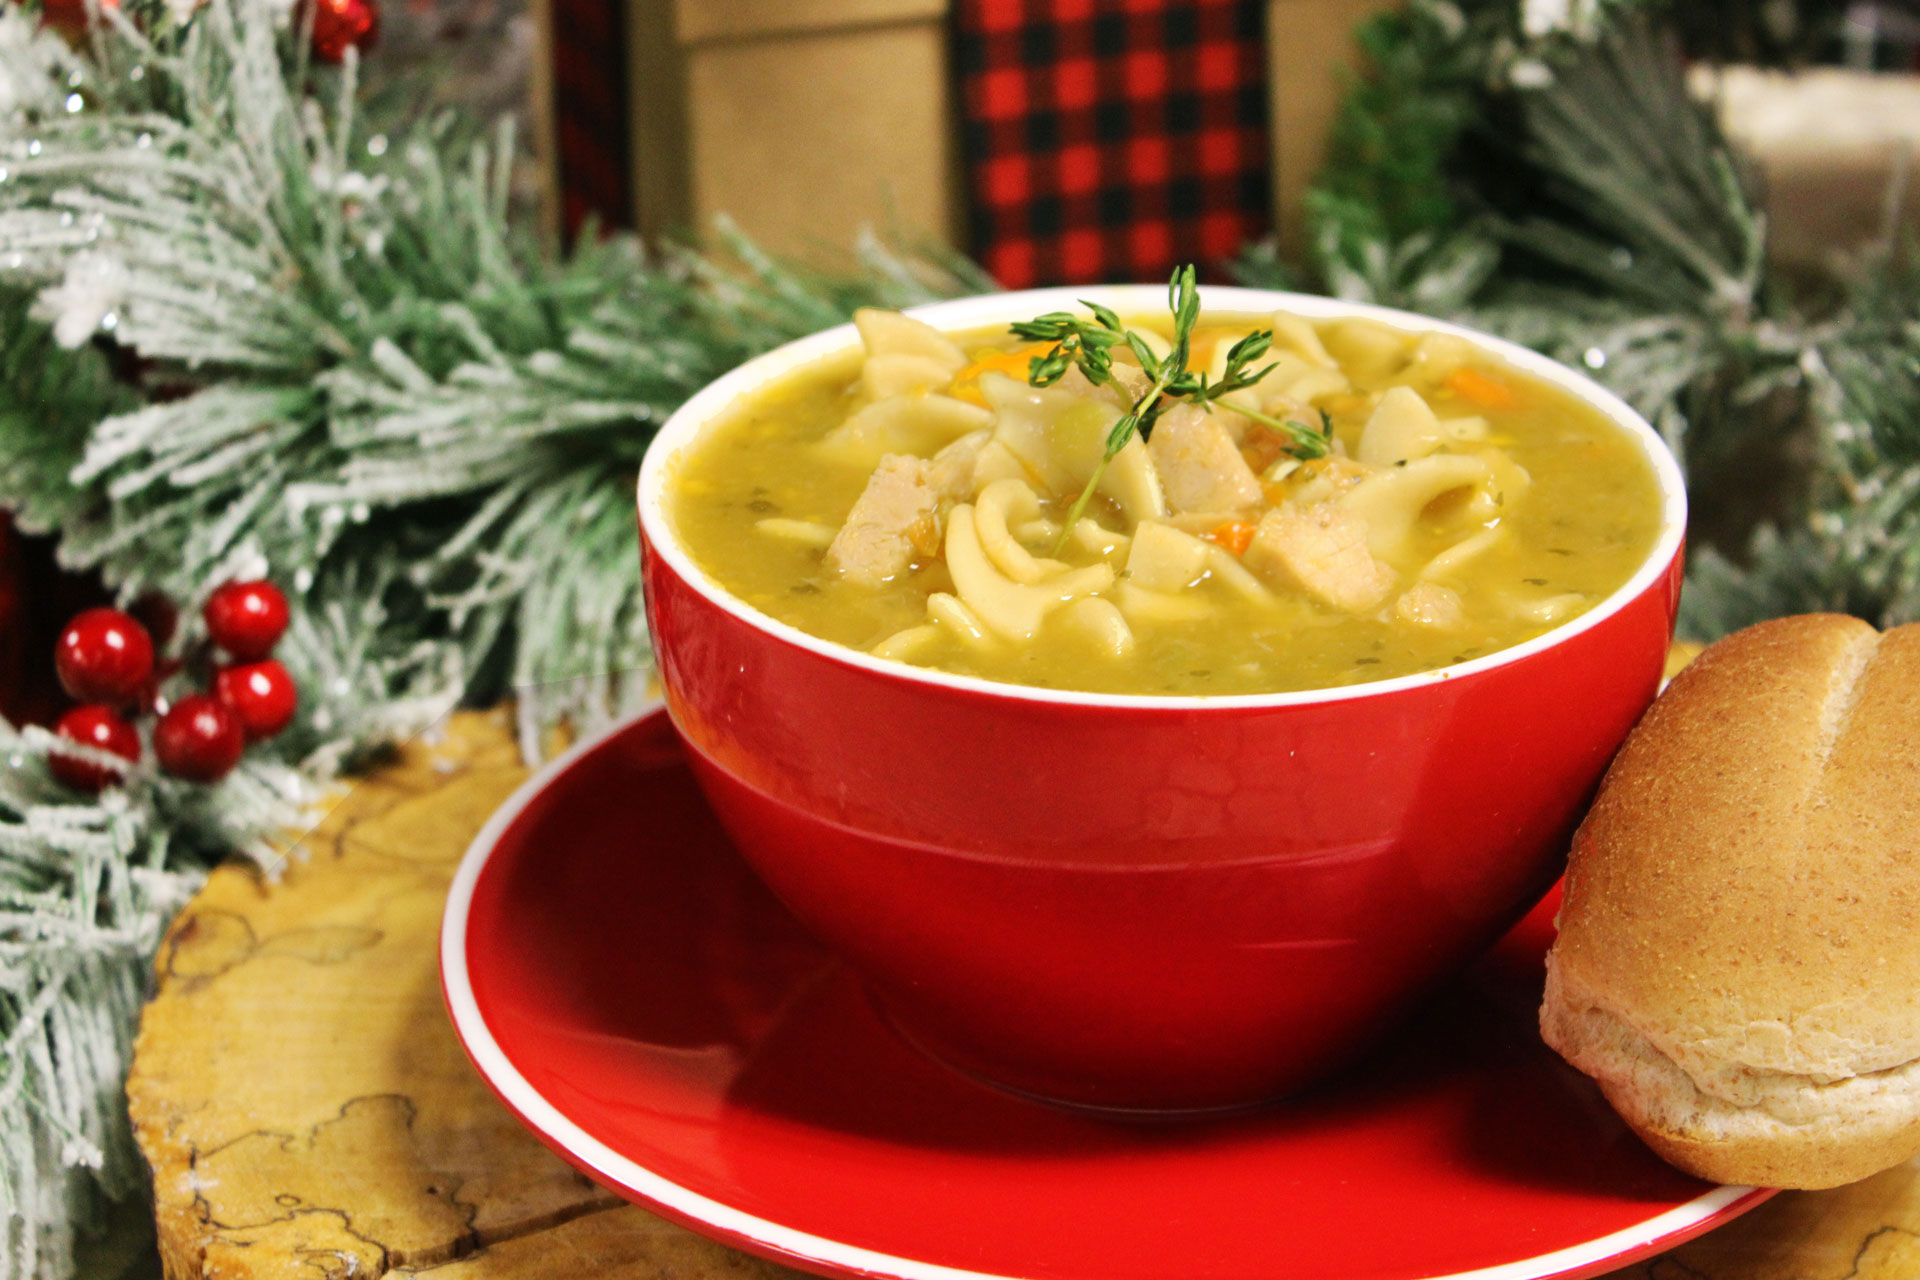 Stay warm during our WinterEvents with some chicken noodle soup!